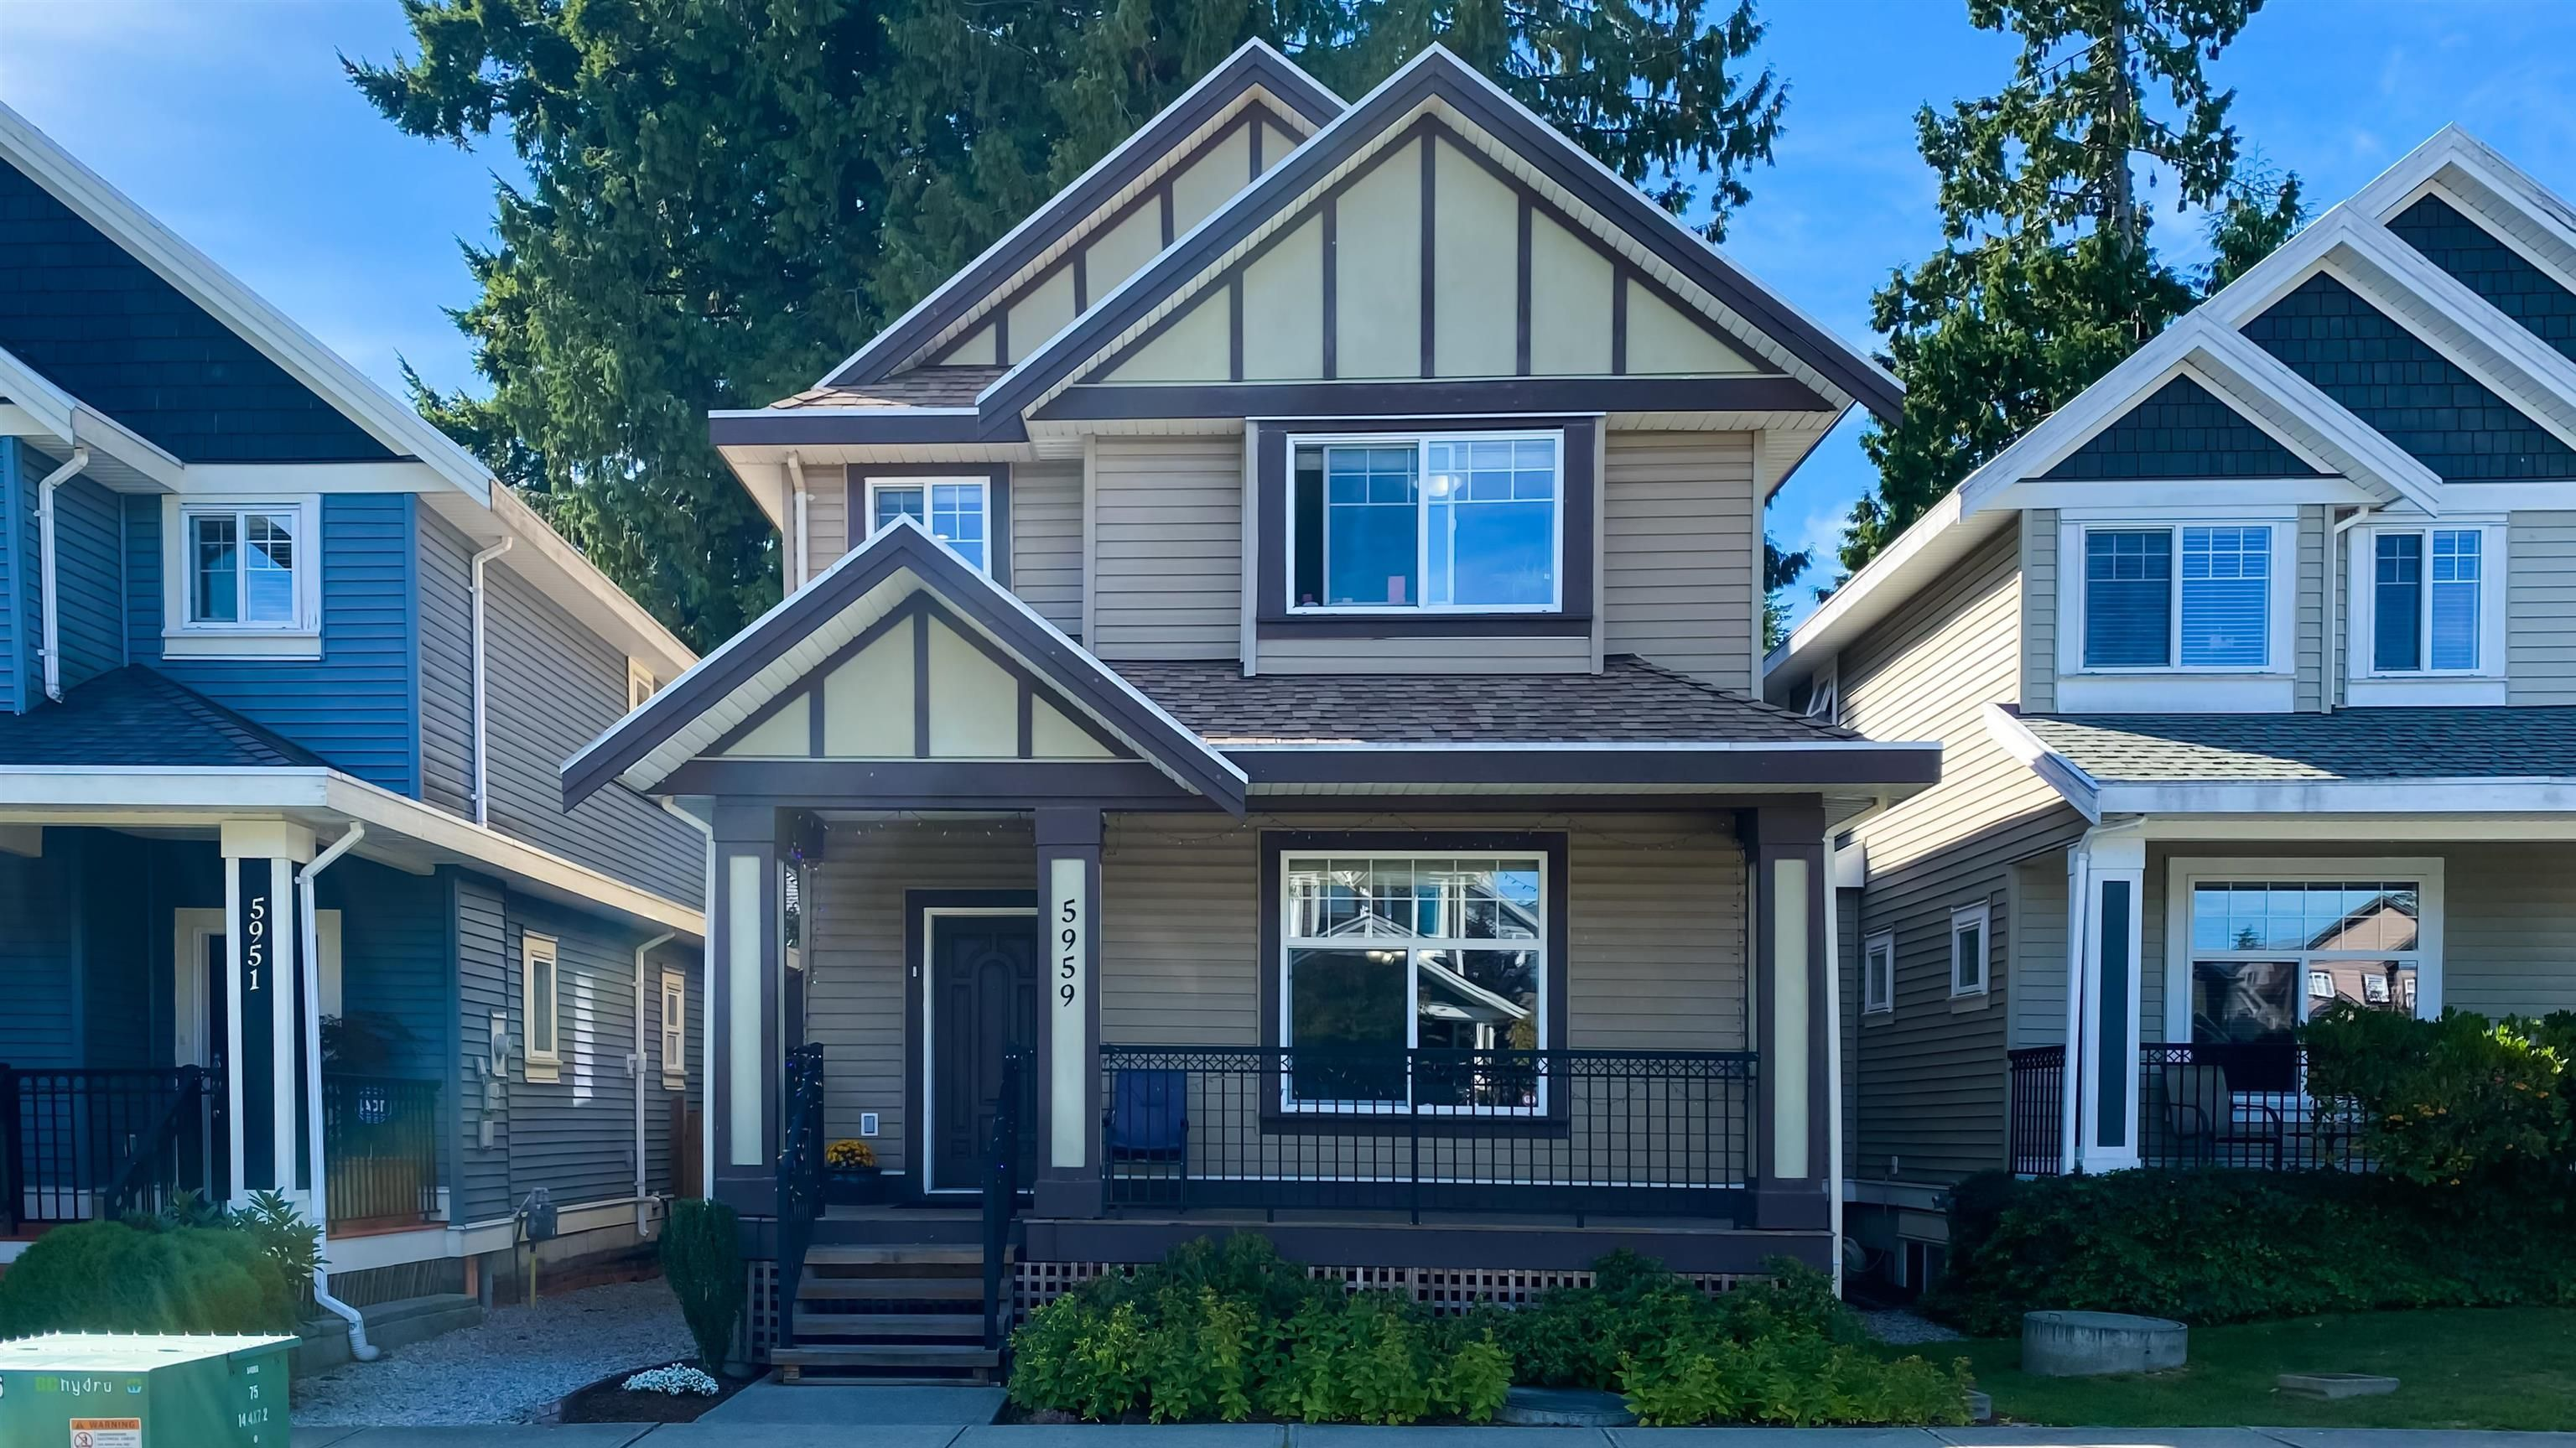 Main Photo: 5959 128A Street in Surrey: Panorama Ridge House for sale : MLS®# R2617515